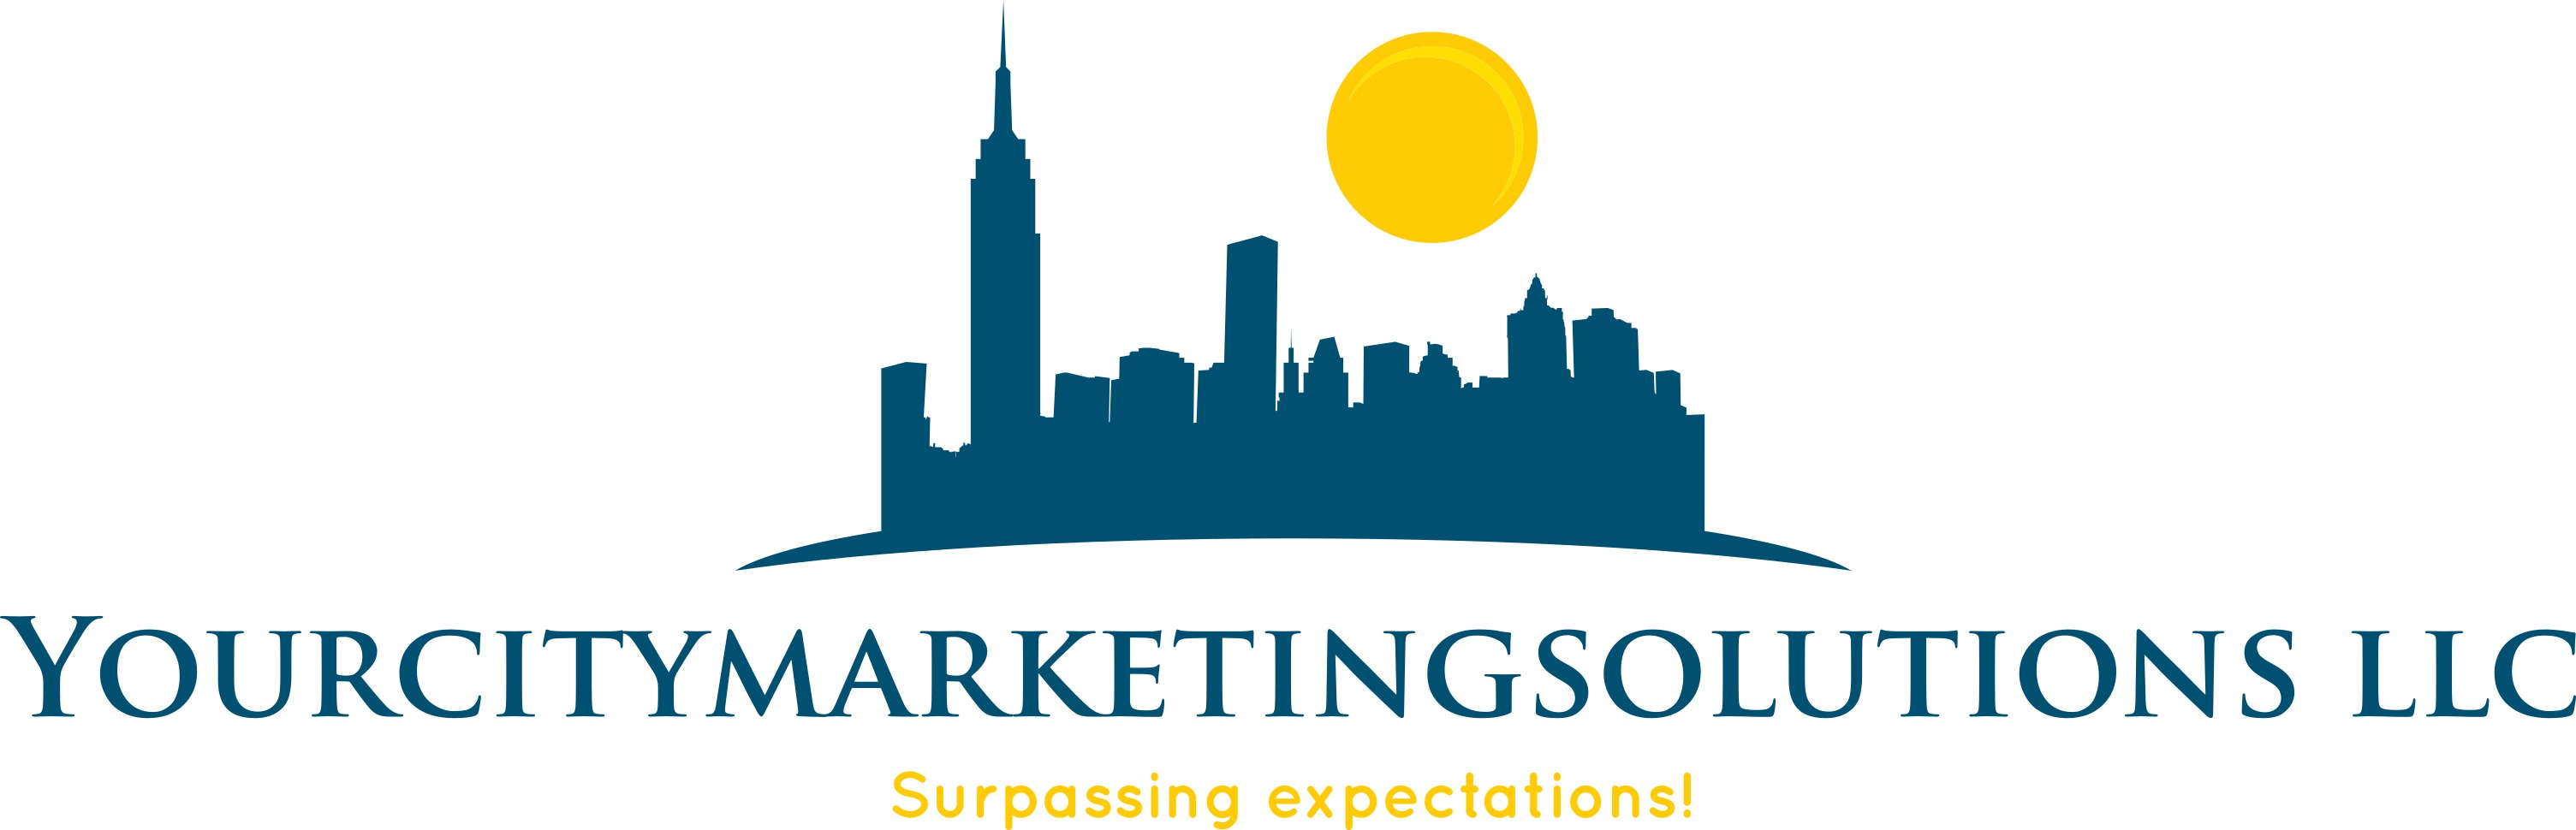 yourcitymarketingsolutionsllc